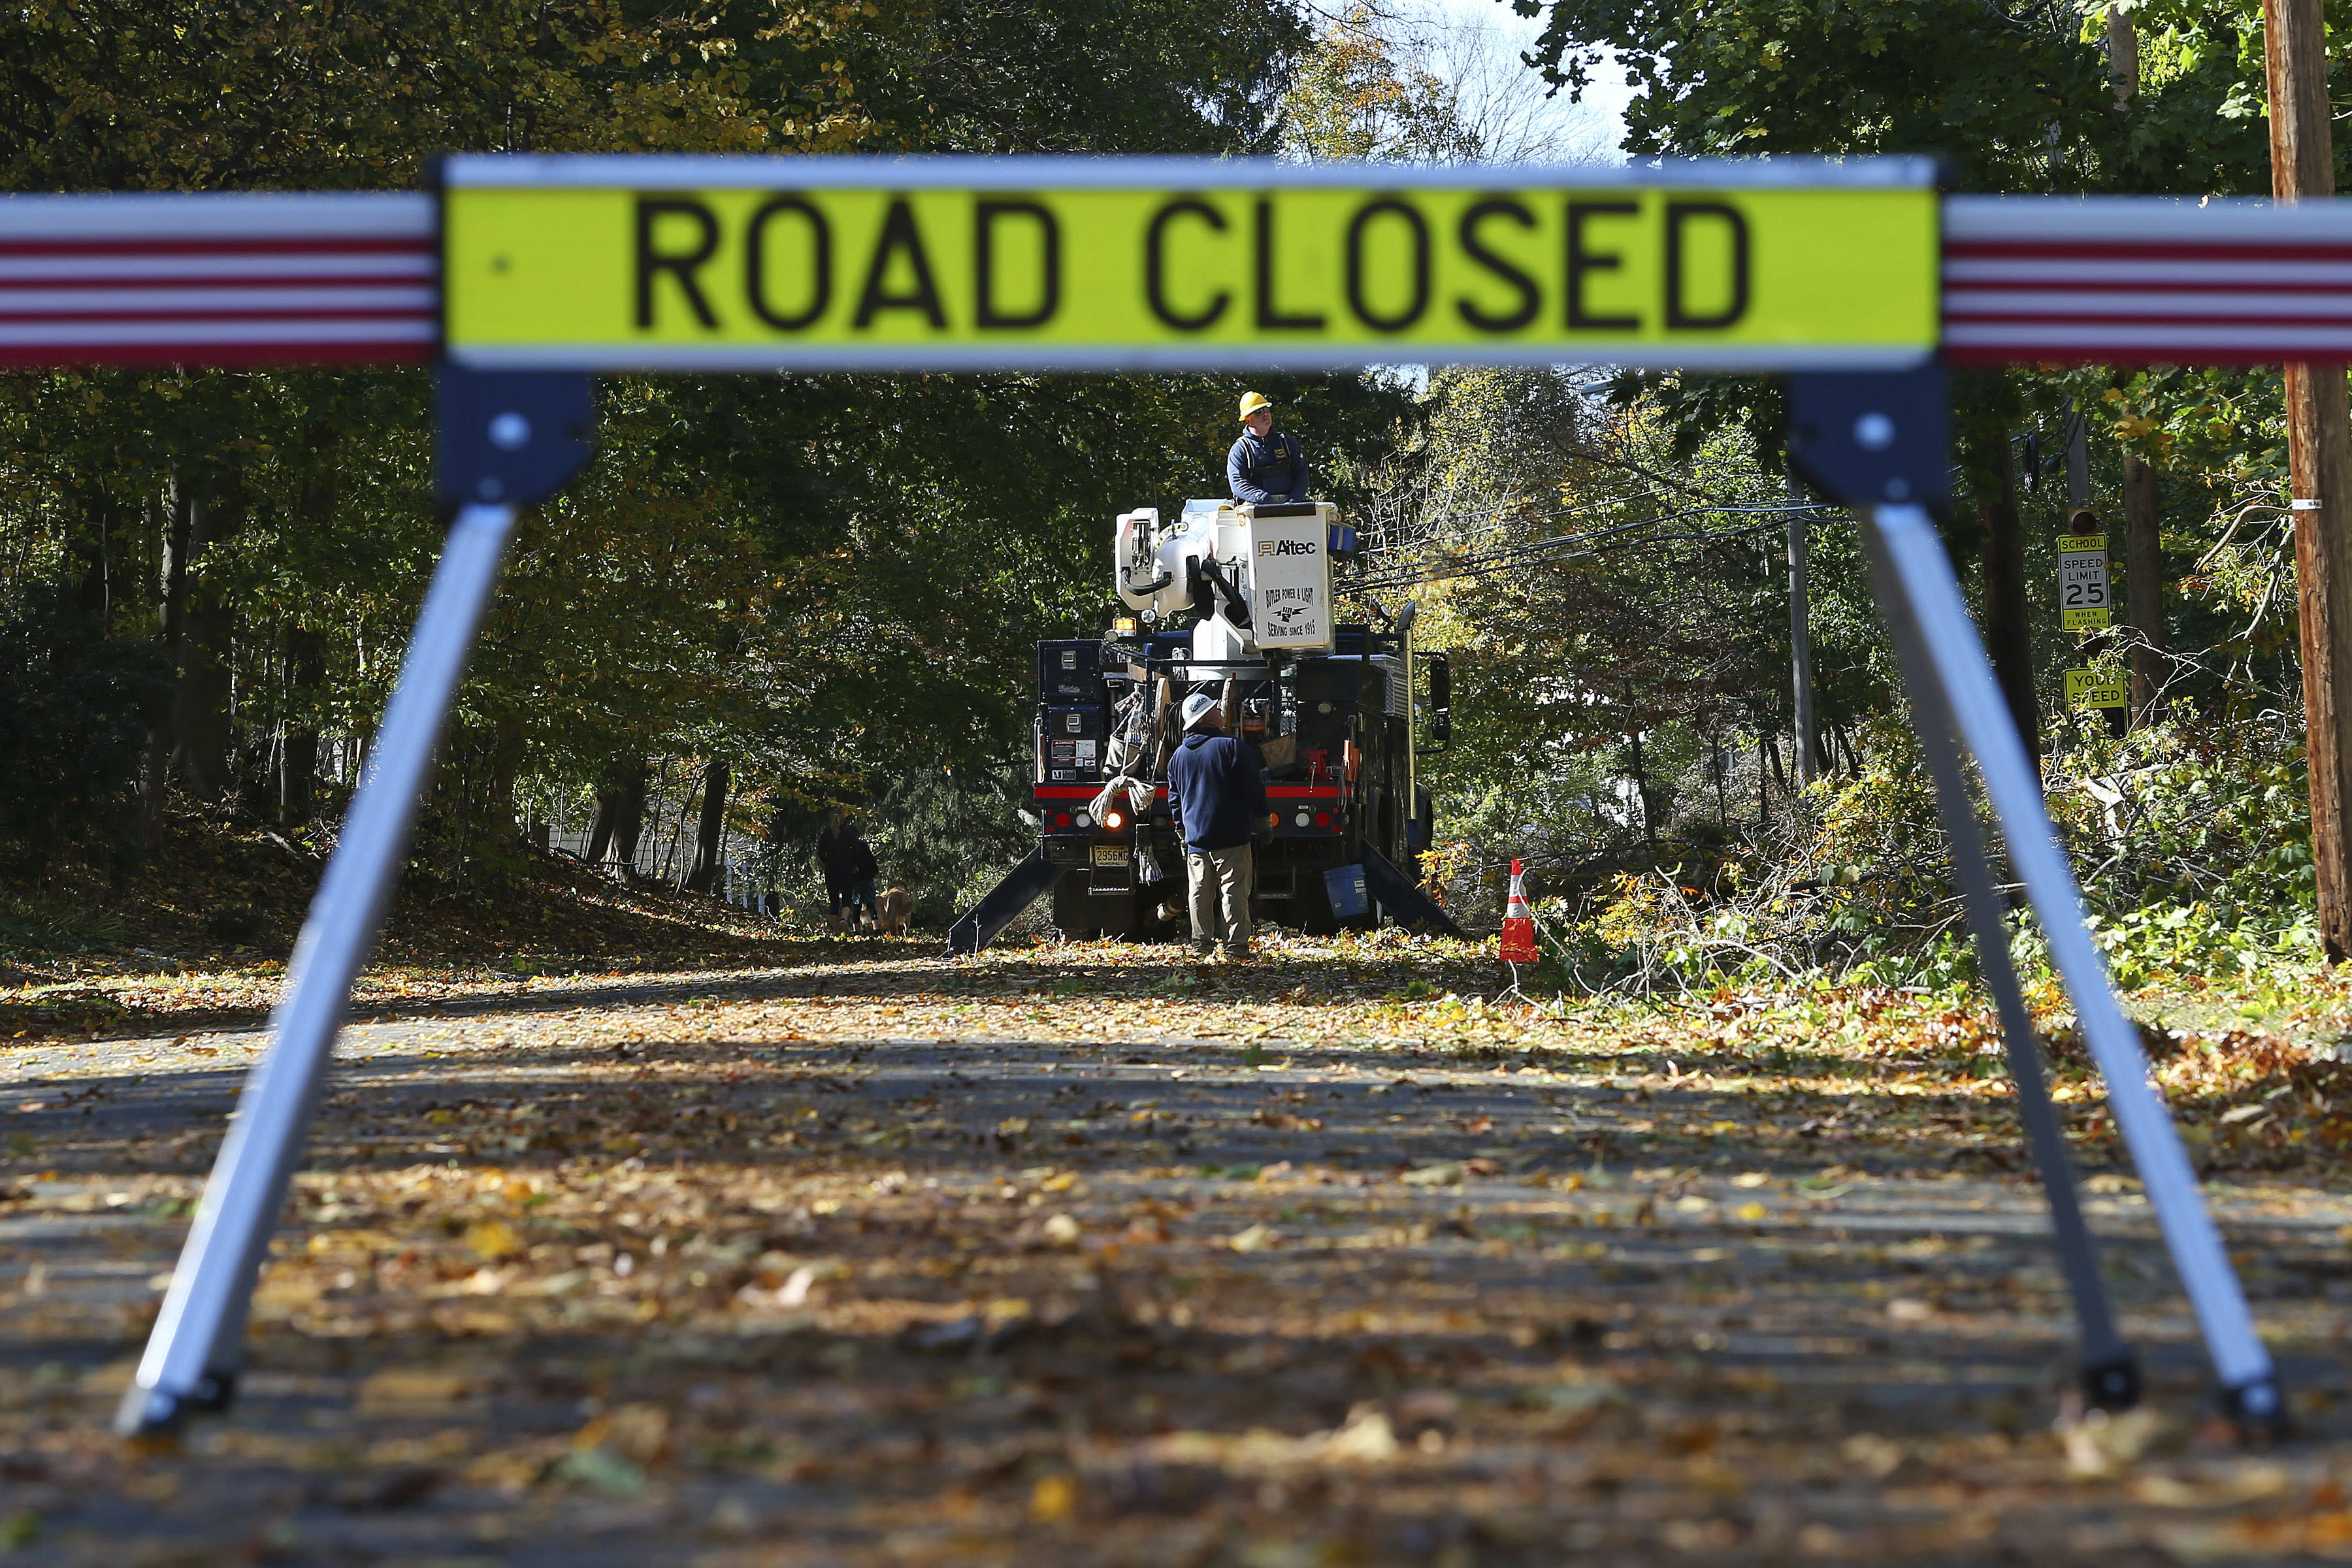 Crews from Butler Municipal Power and Light work on downed power lines on Green Village Road, Friday, Nov. 1, 2019, in Madison, N.J. The borough was hit by high winds on heavy rain late the night before. (AP Photo/Rich Schultz)